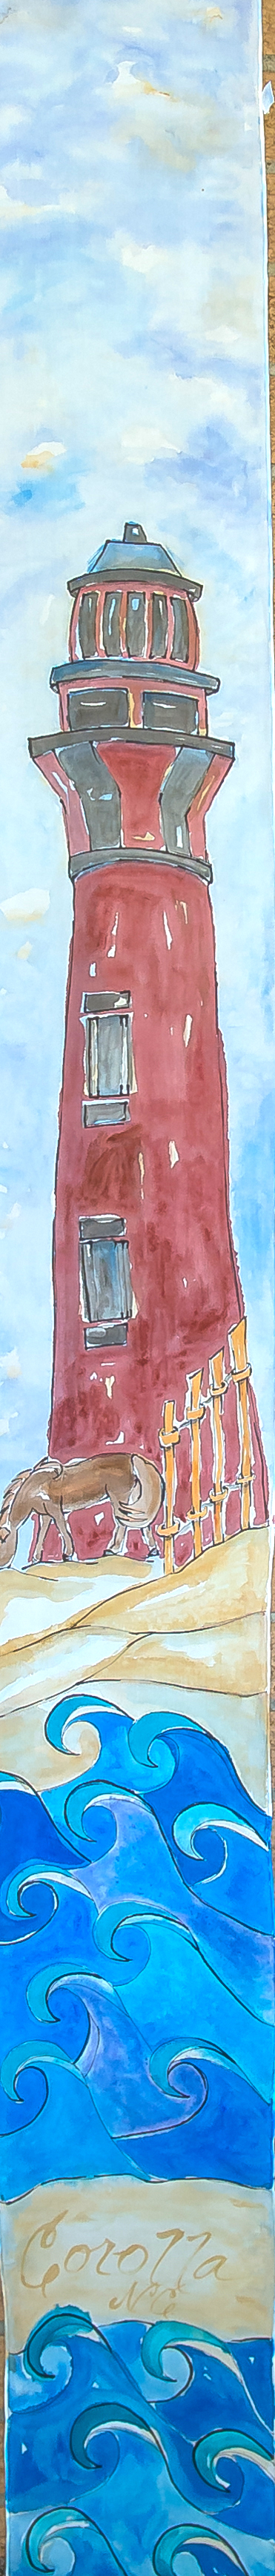 "Whimsical Currituck Lighthouse 14""x72"" $75"